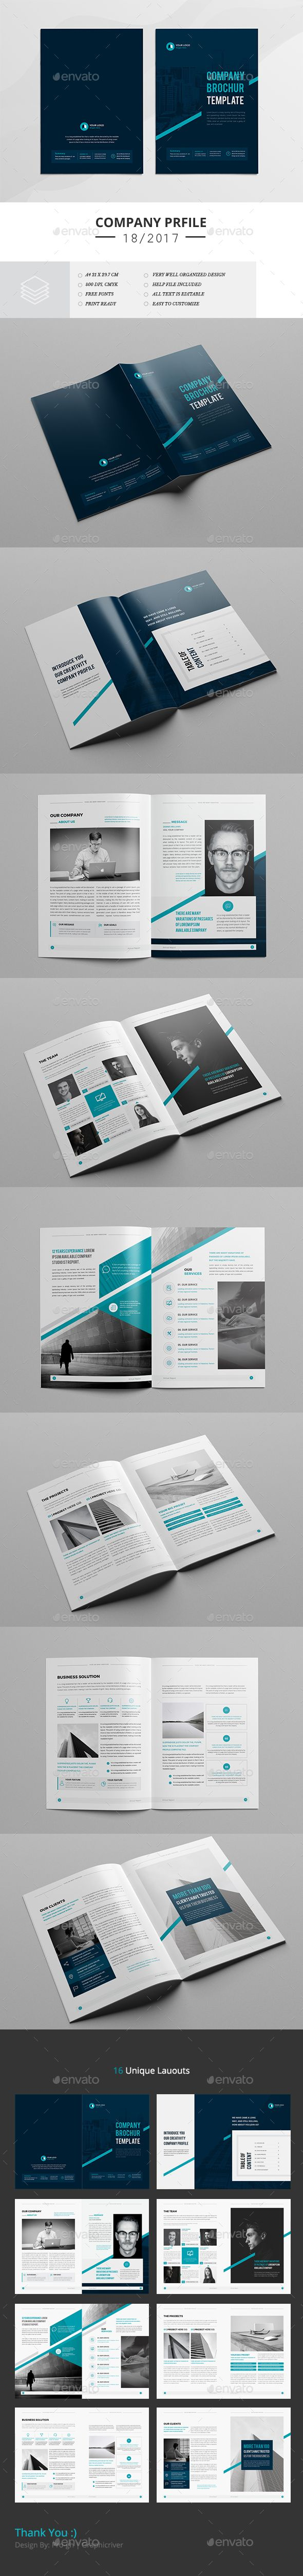 Company Profile 16 Pages — InDesign INDD #minimal #trendy • Download ➝ https://graphicriver.net/item/company-profile-16-pages/19770700?ref=pxcr